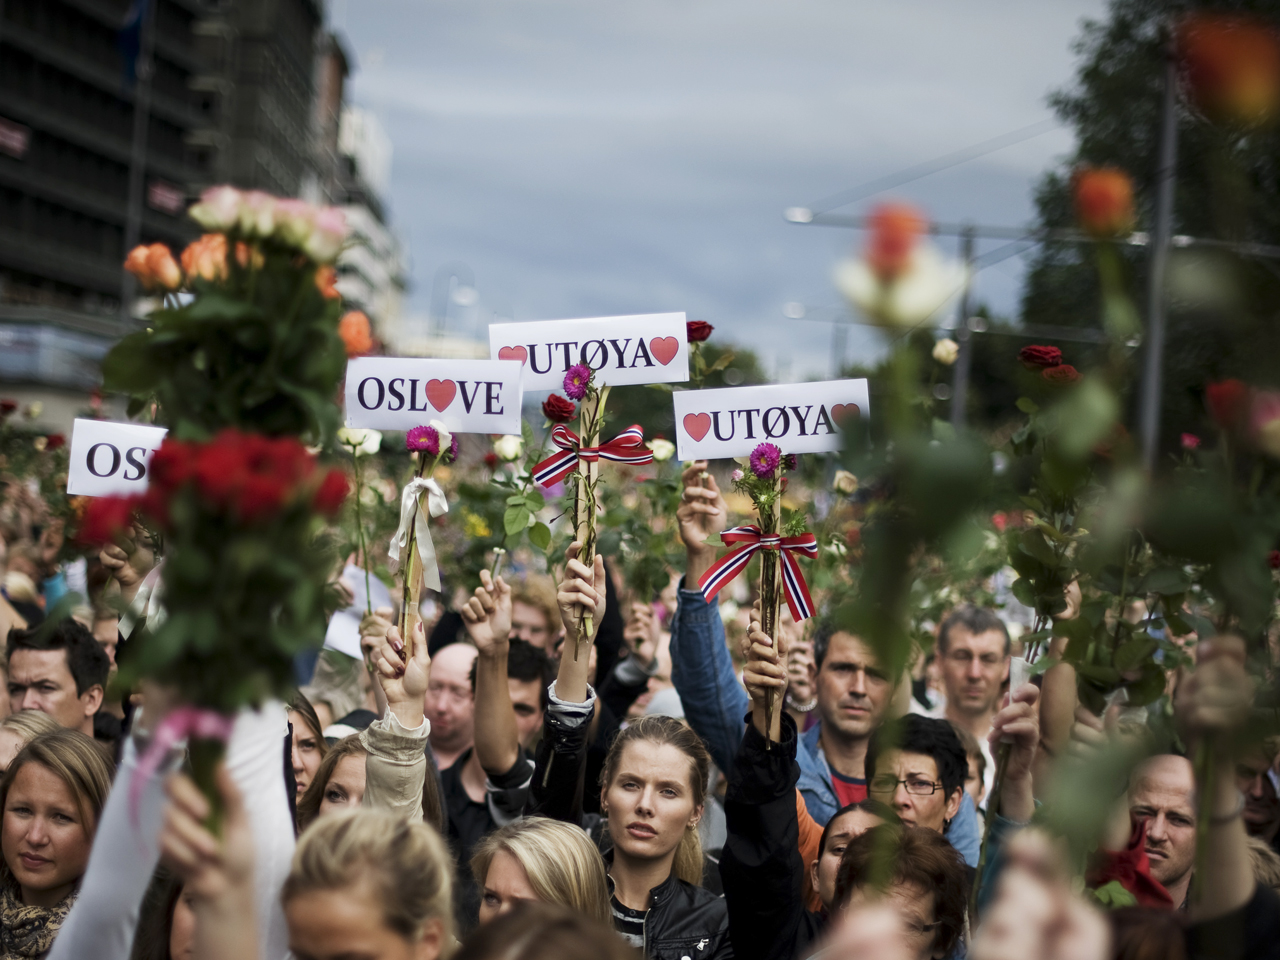 Nine years on from the far-right terrorist attacks in Norway, and the threat persists